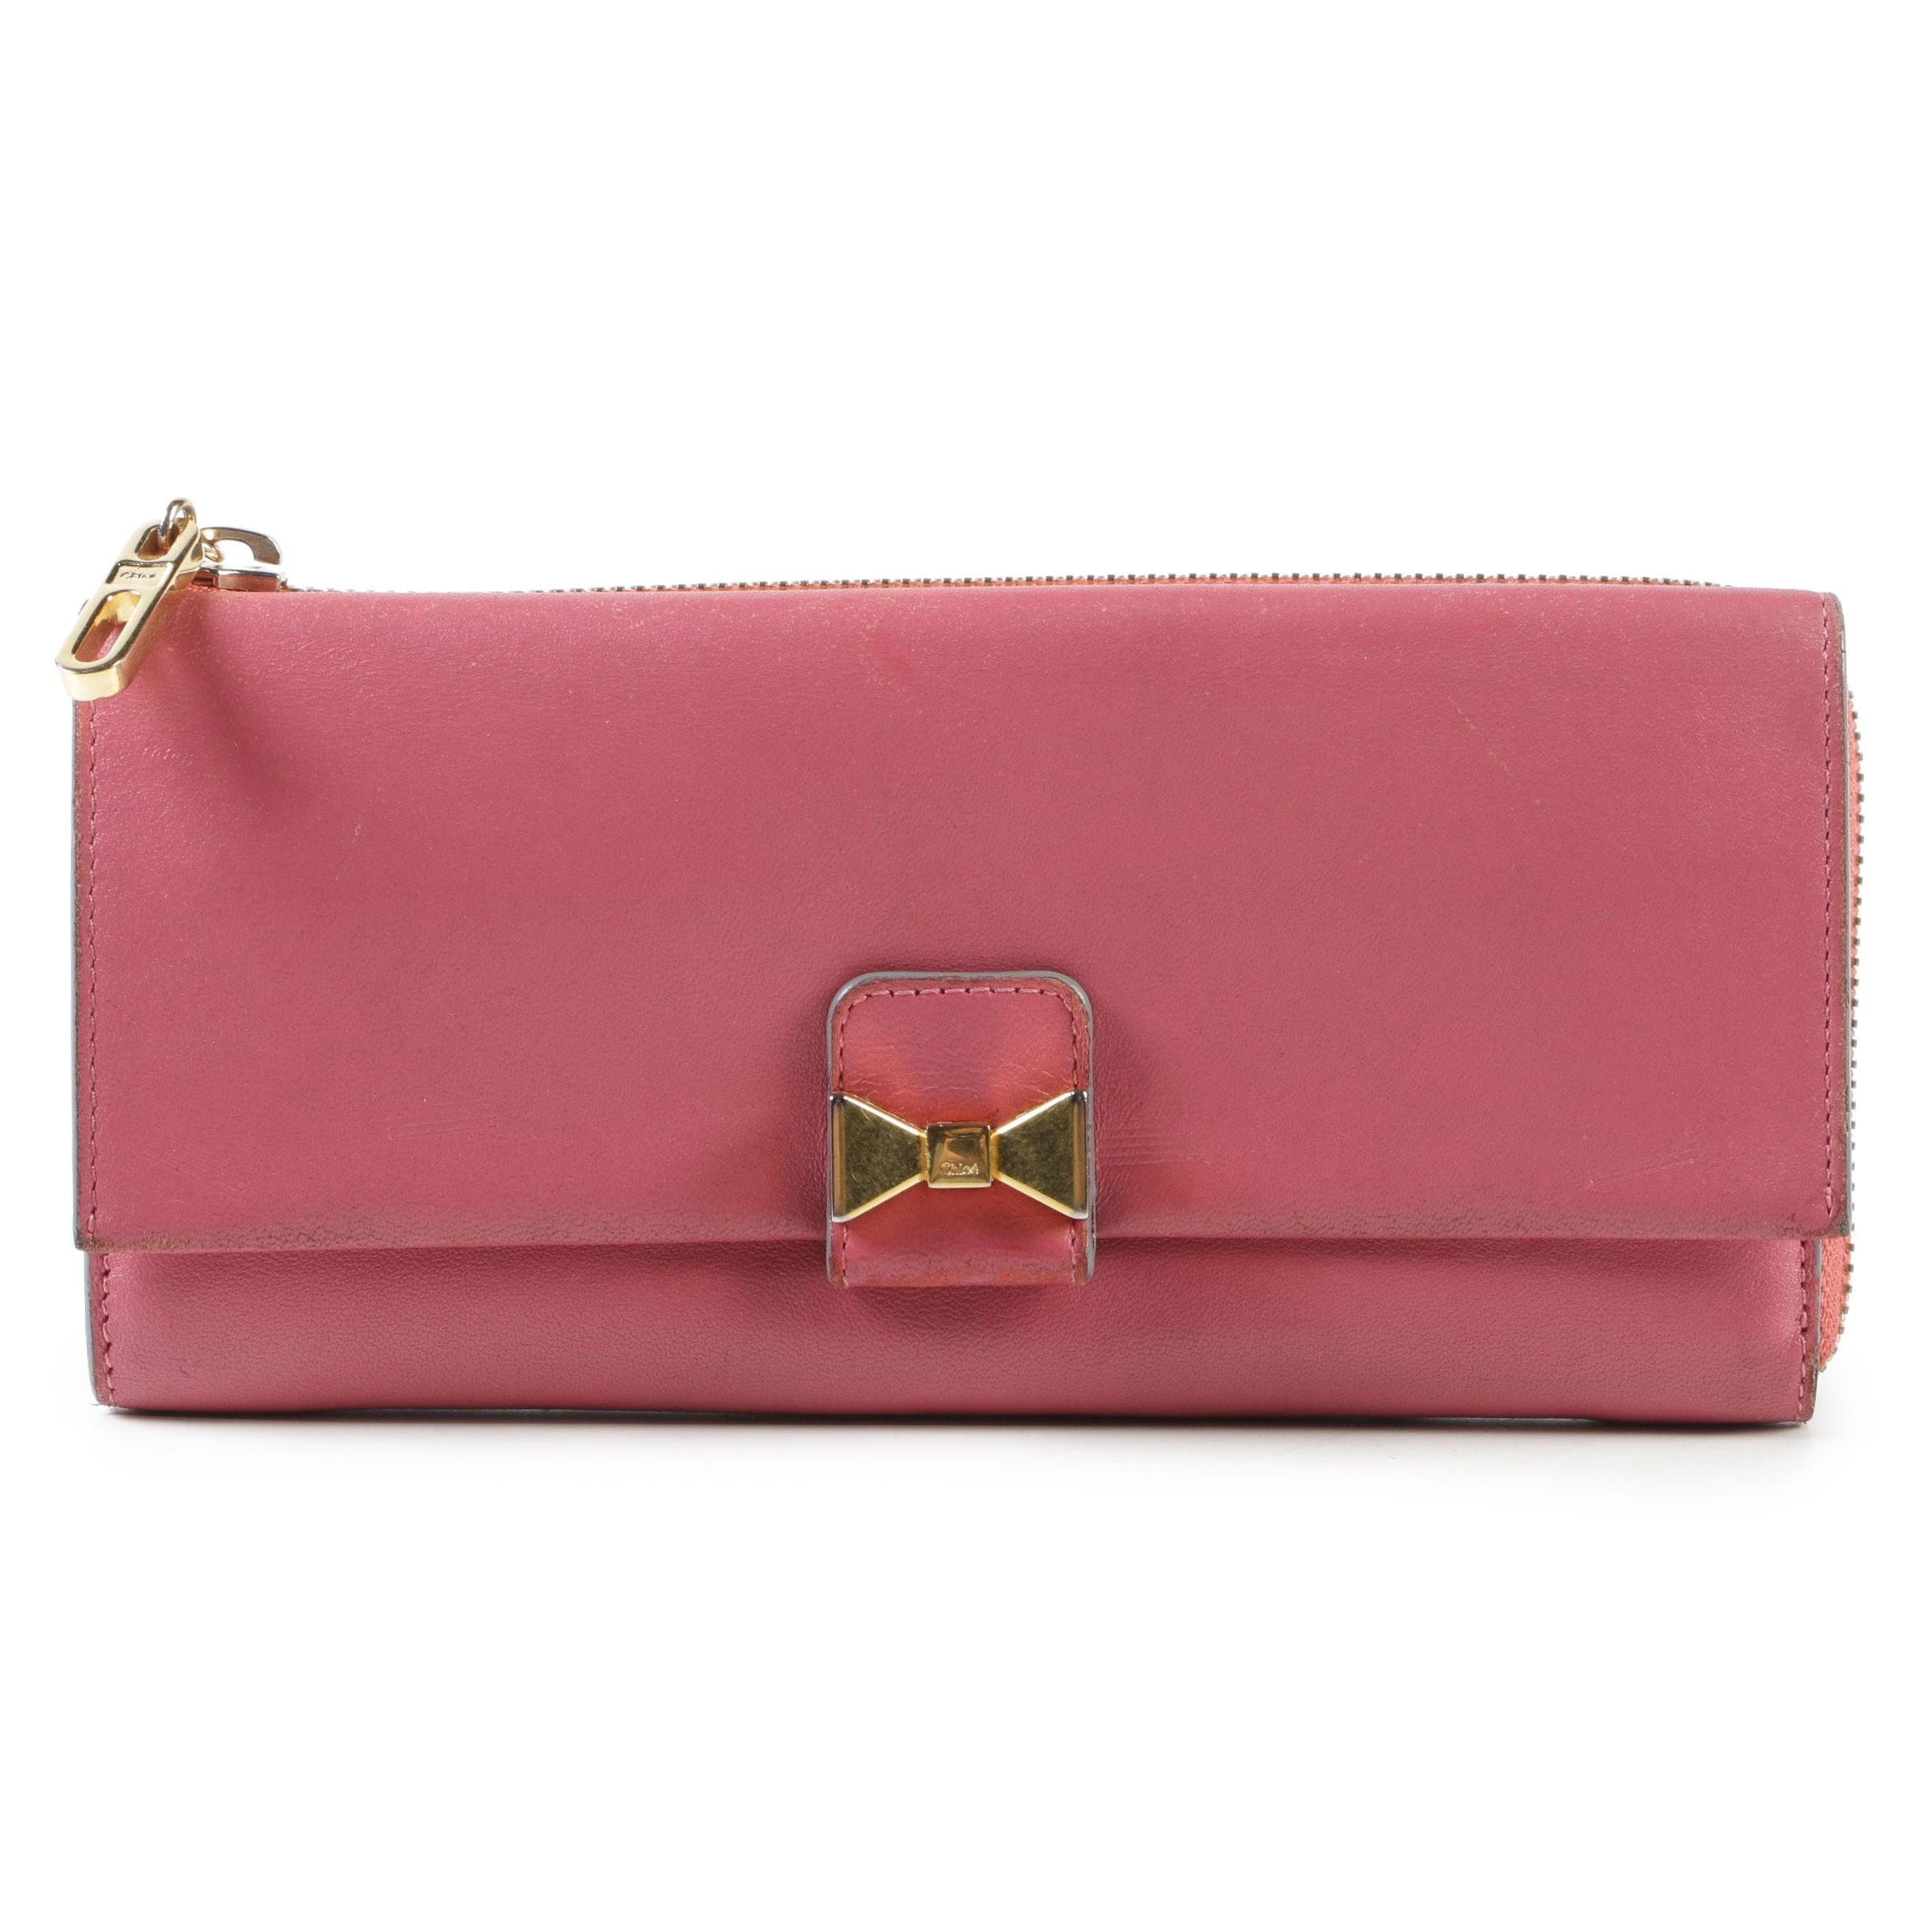 Chloé Leather Pink Island Accordion Wallet with Gold Tone Bow